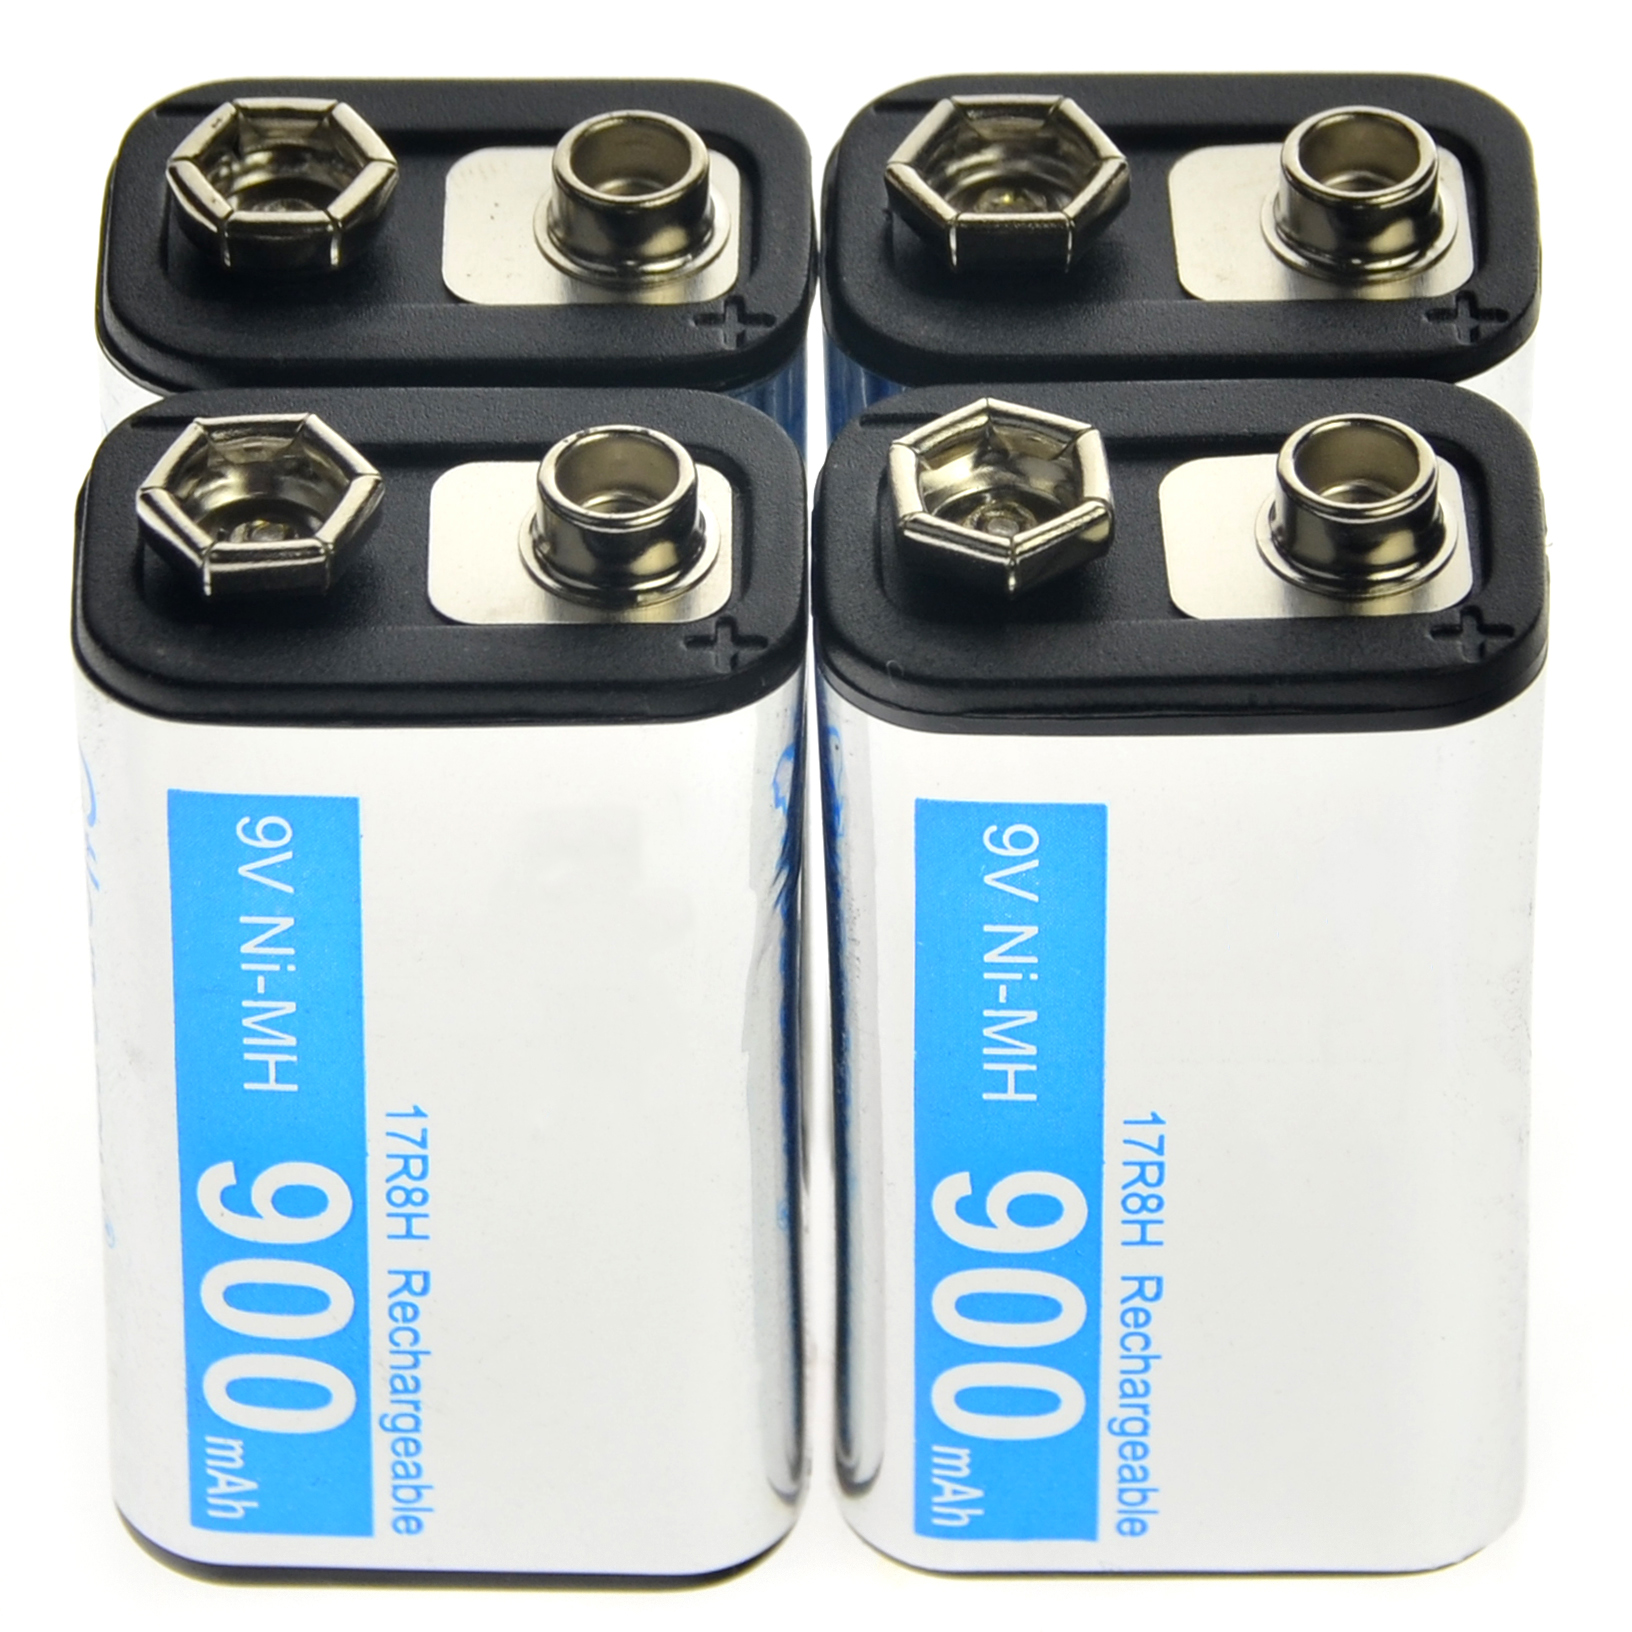 2-24pcs 9V 900mAh Rechargeable battery Cell Durable Battery PPS Black NiMh block Power